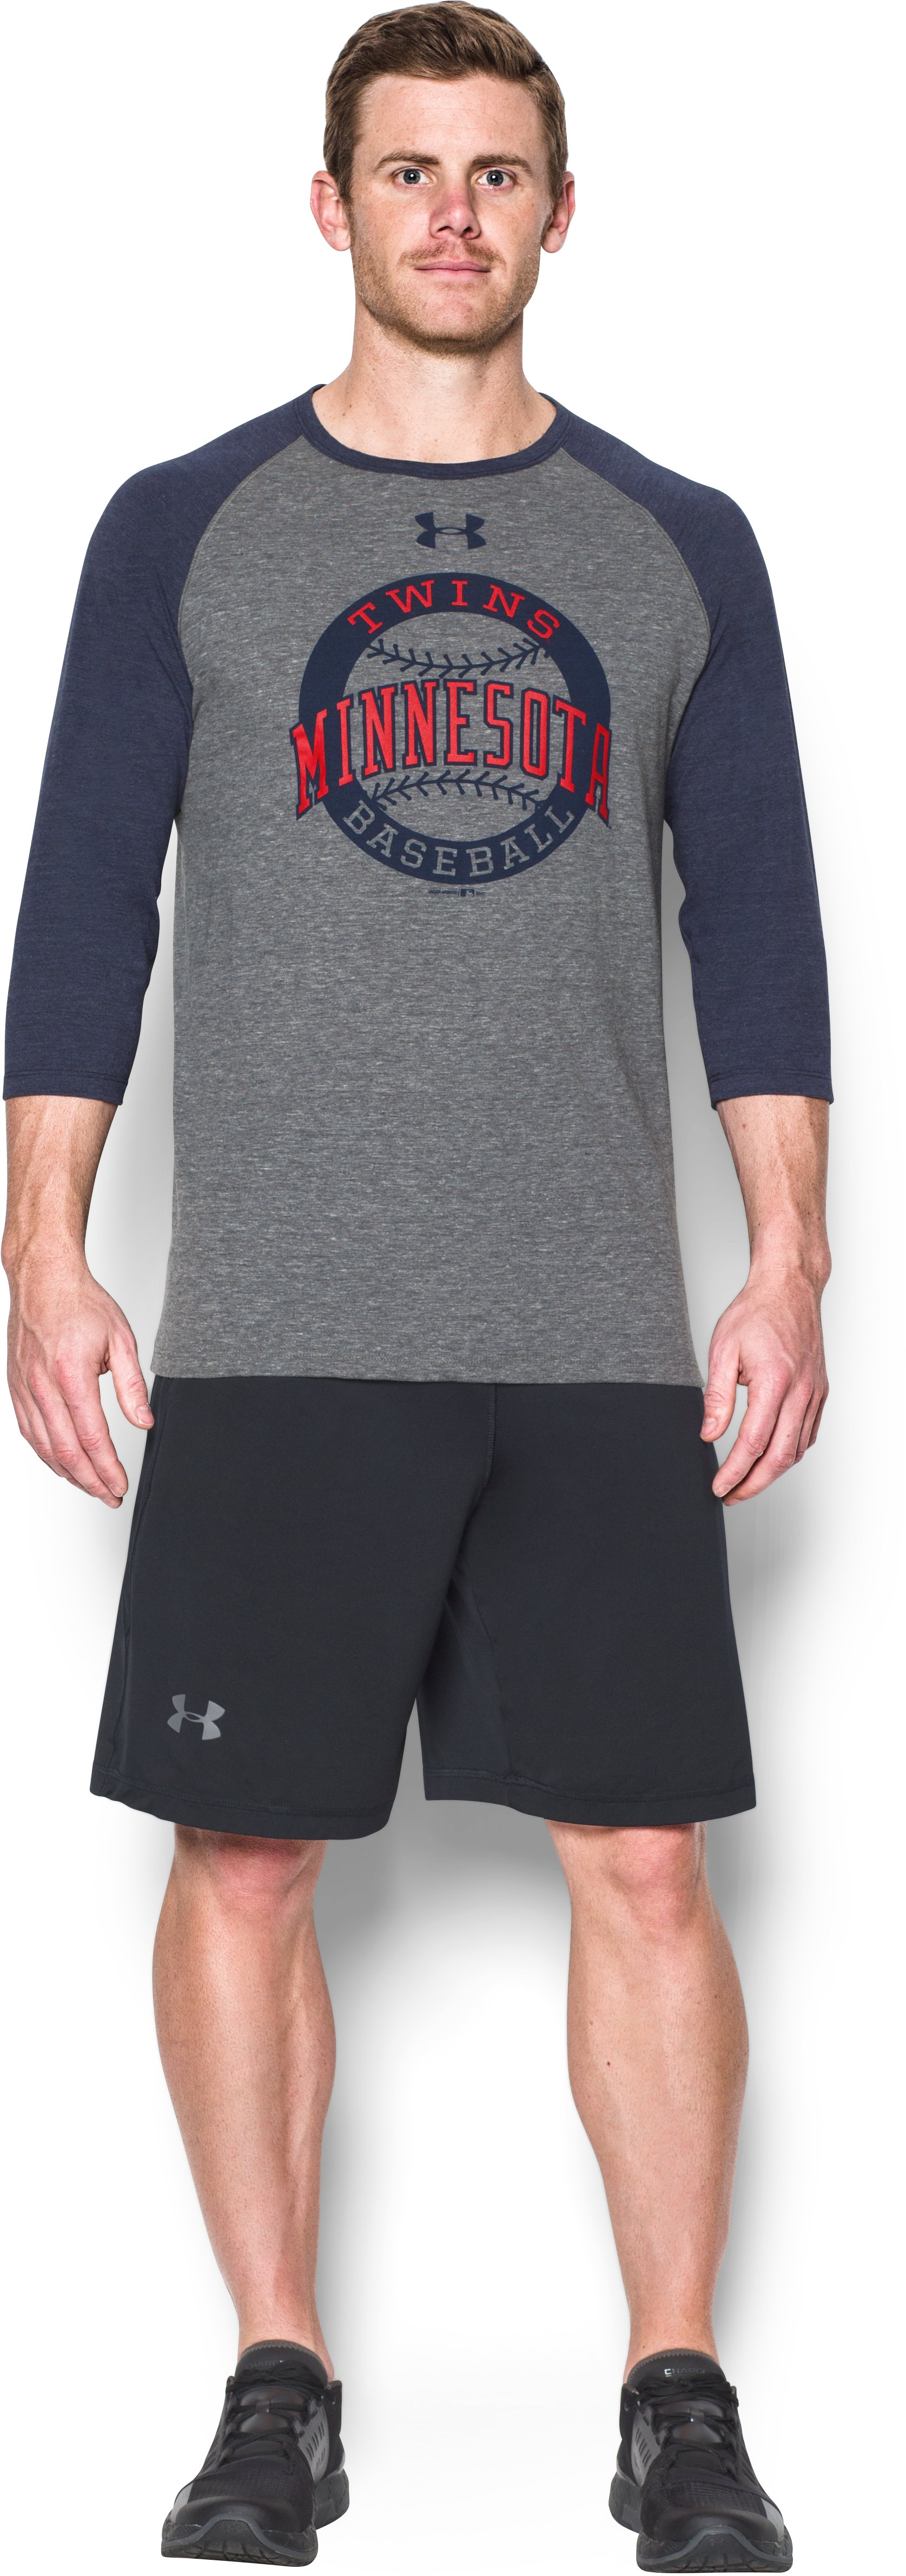 Men's Twins ¾ Sleeve T-Shirt, Midnight Navy, Front